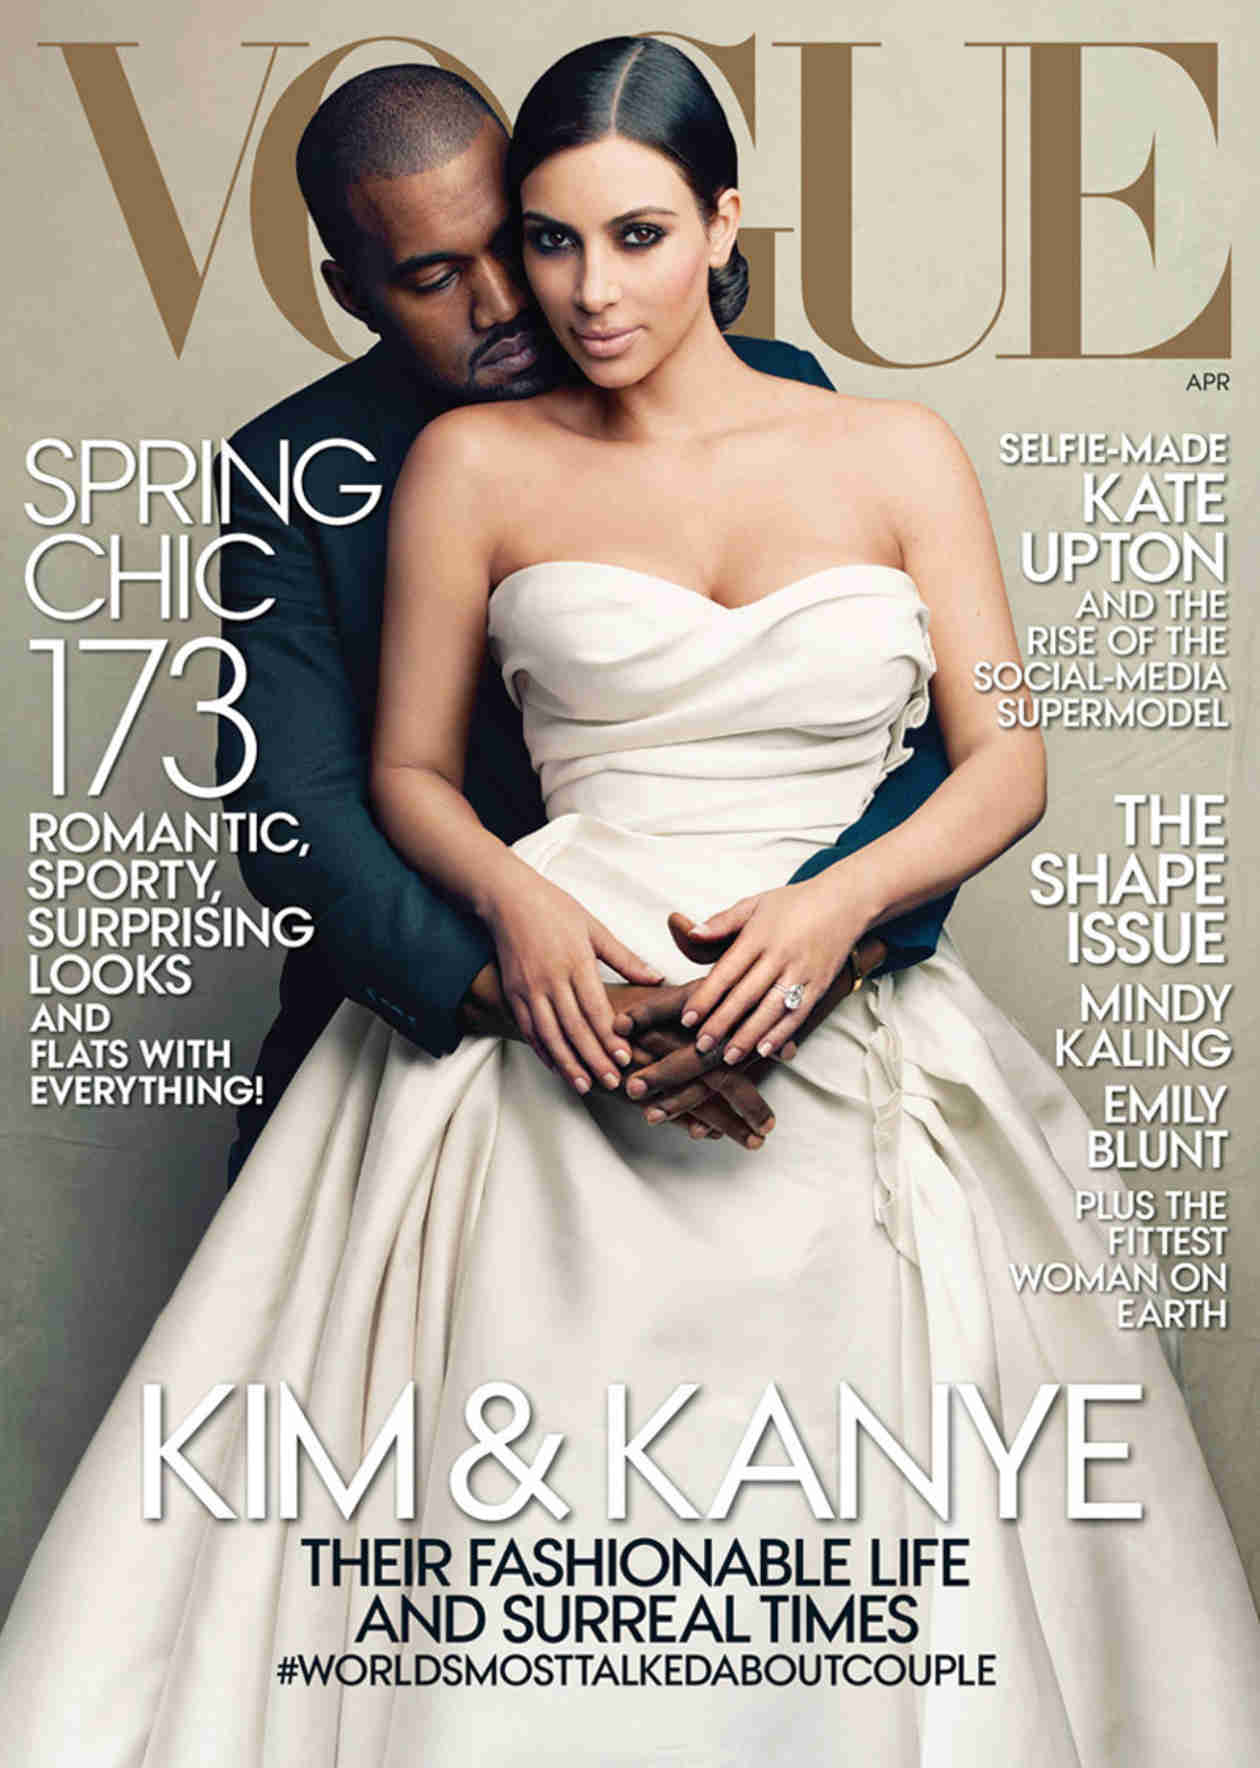 Naomi Campbell Shades Kim Kardashian and Kanye West? She Laughs at Their Vogue Cover (VIDEO)